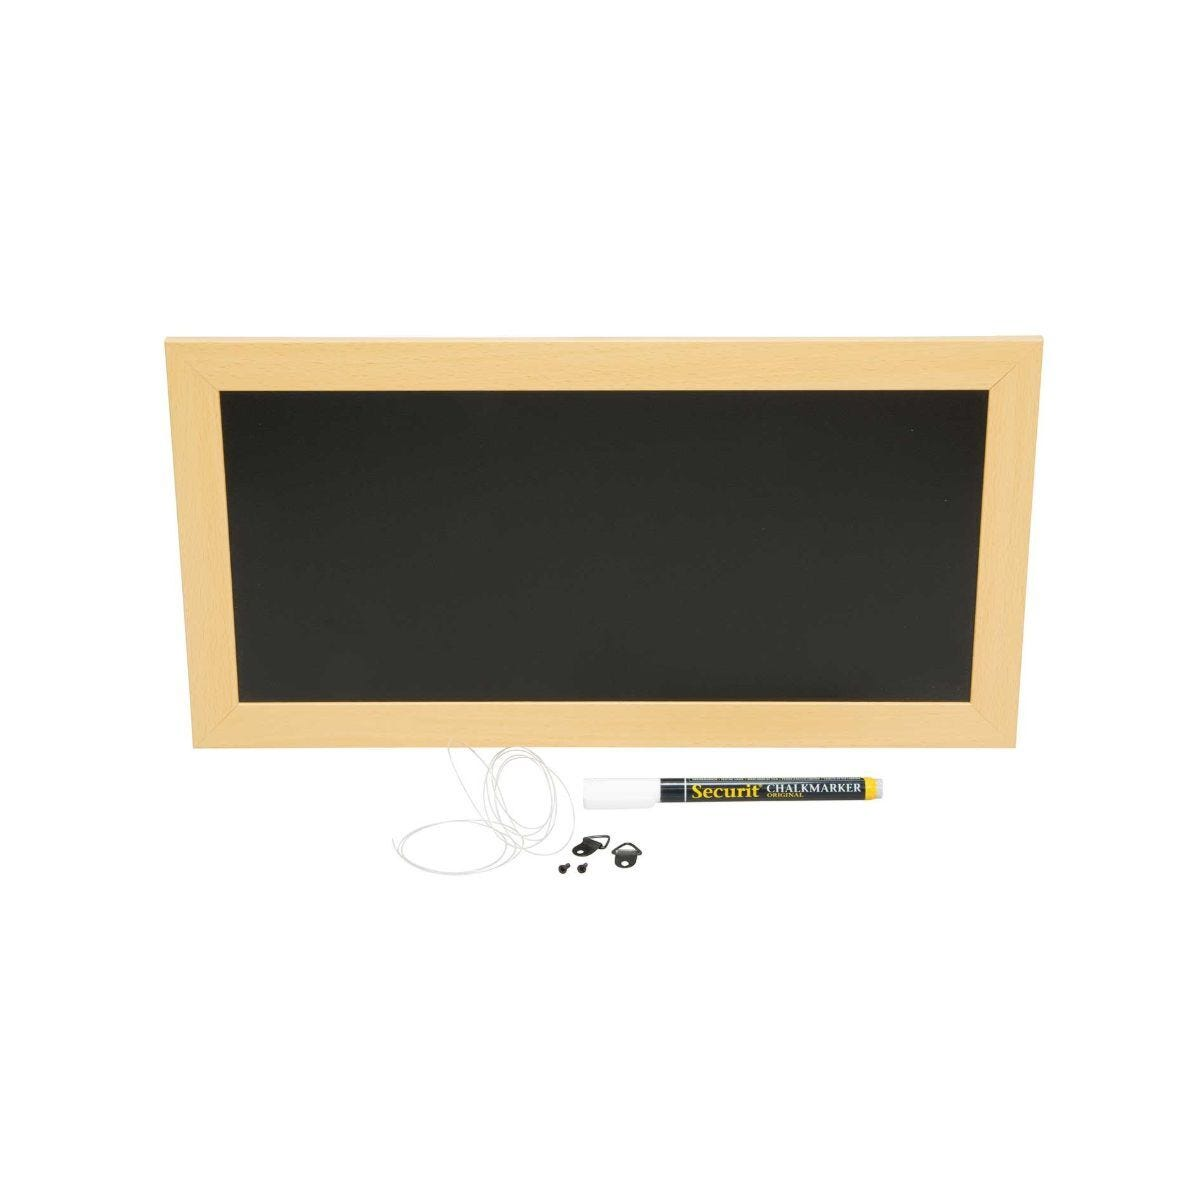 Securit Chalk Board with Black Frame - 30 x 40cm